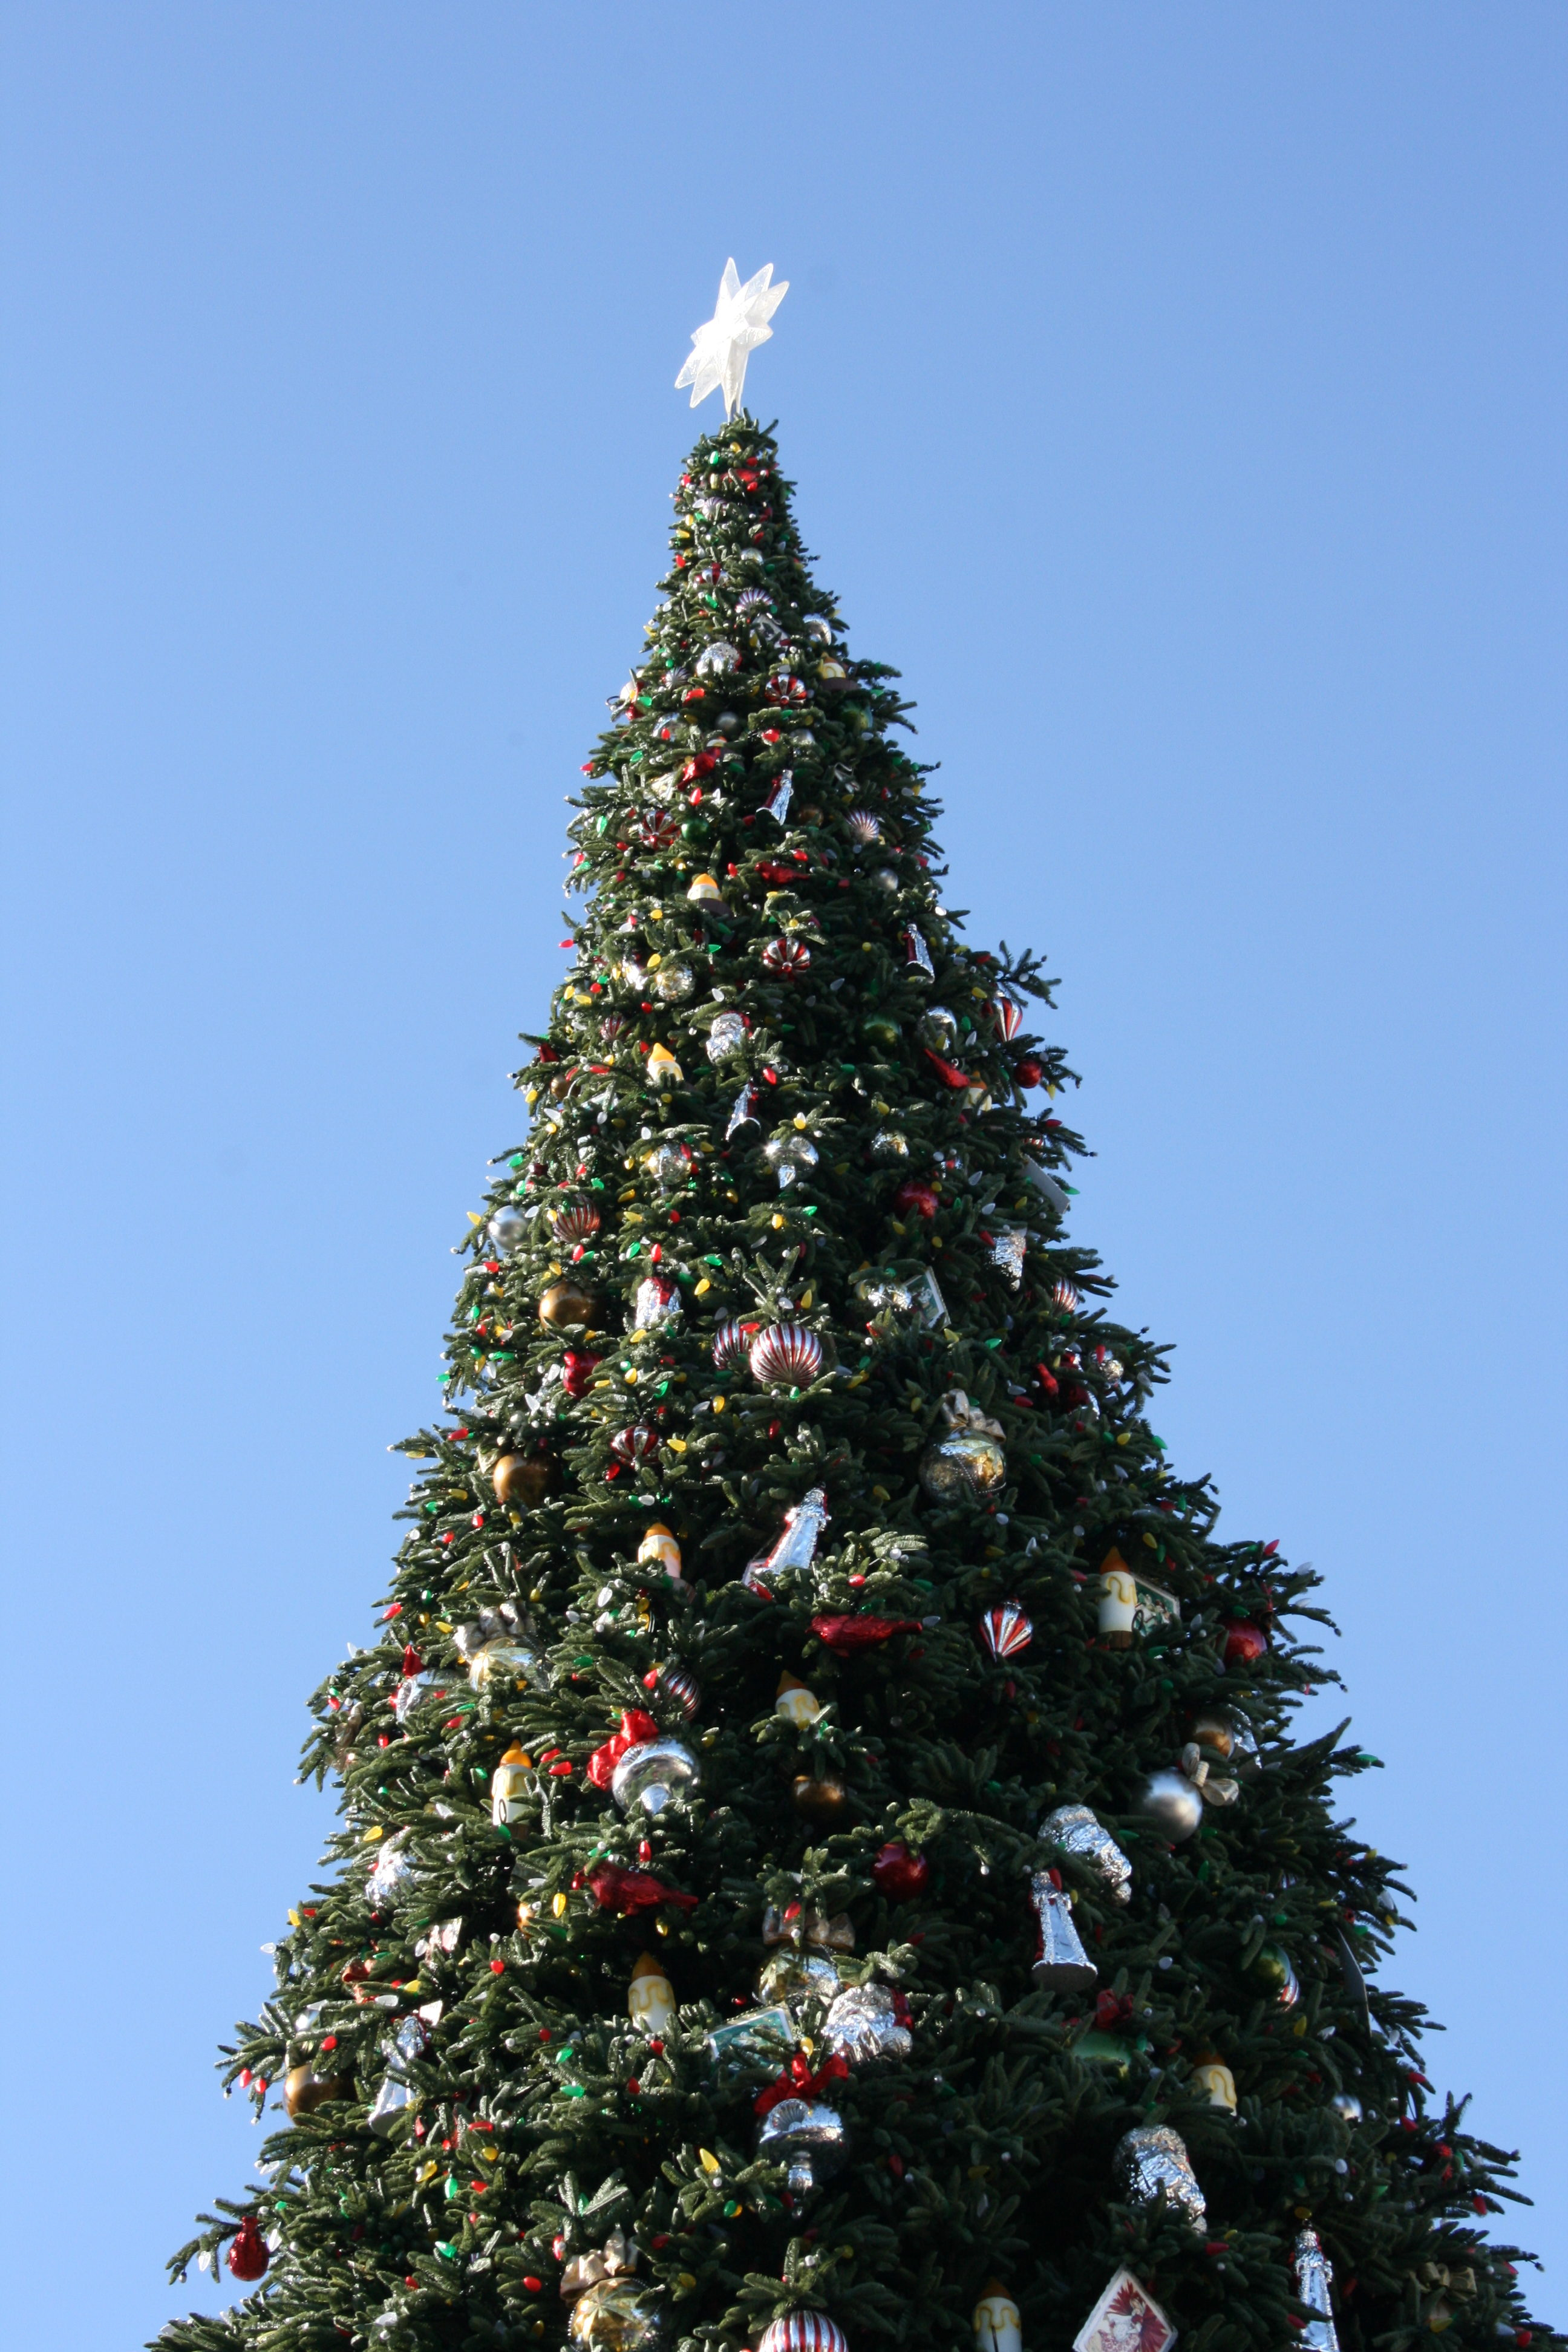 Top of Christmas tree at Disneyland Main Street